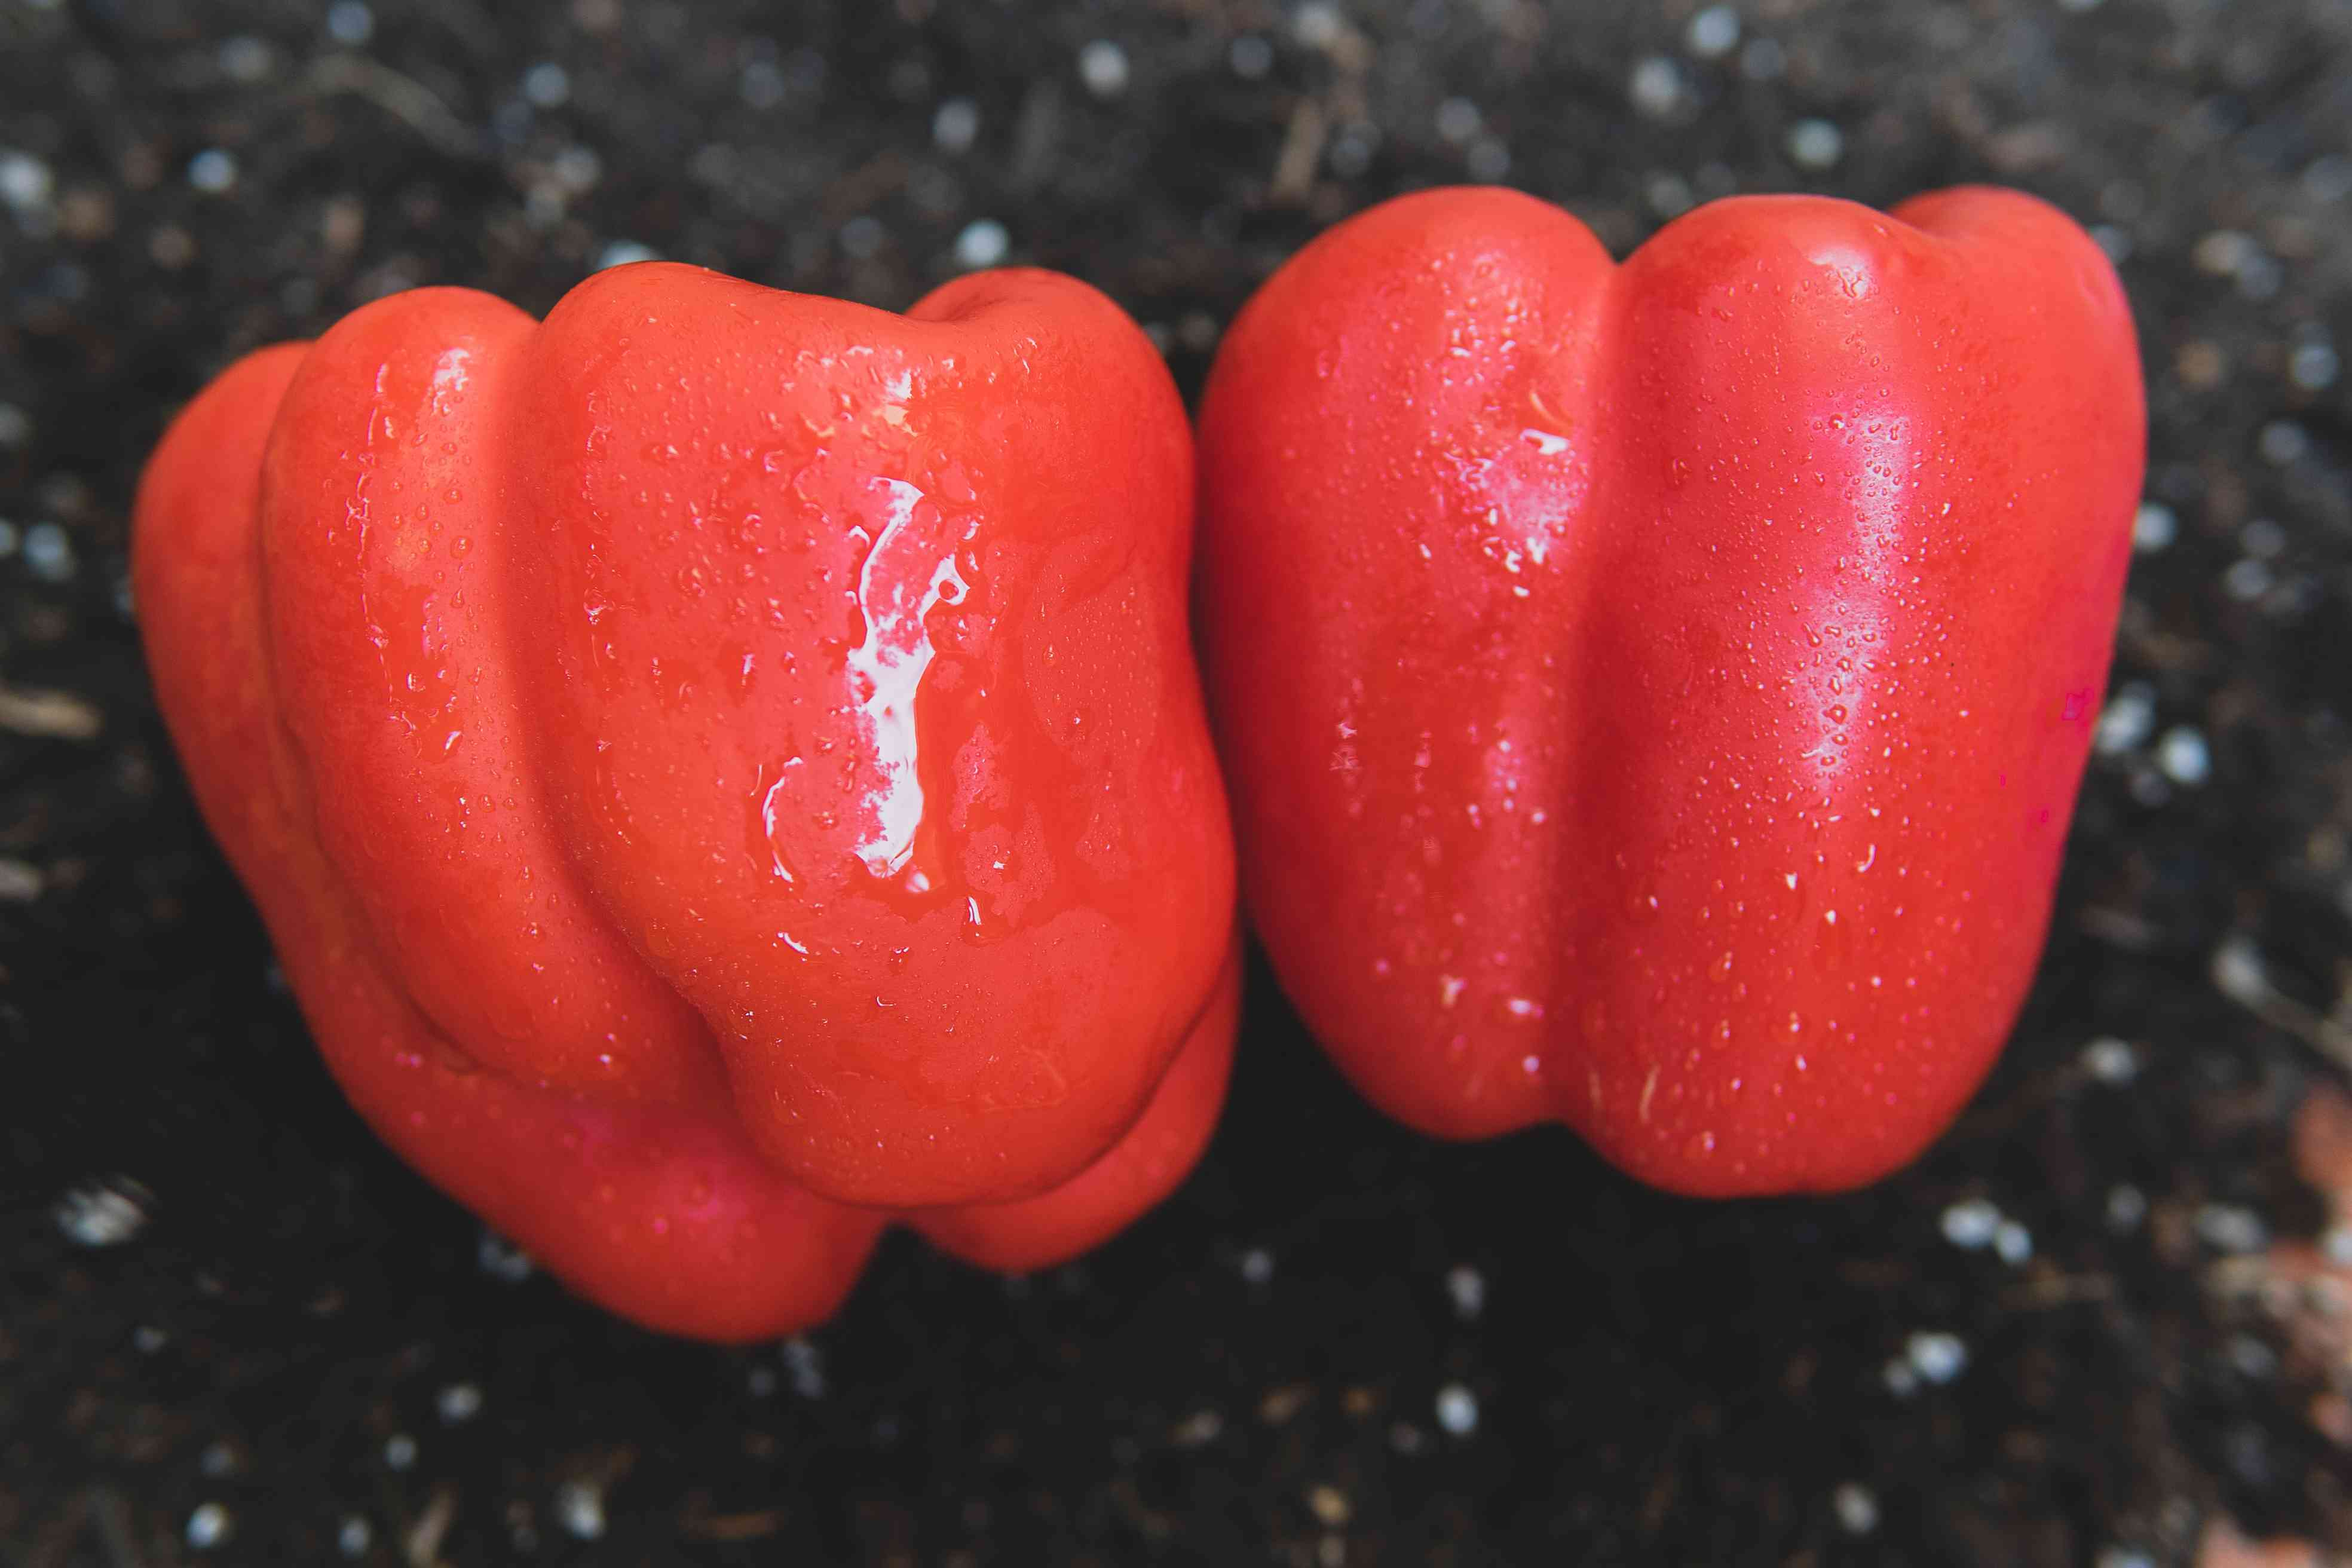 Two red bell peppers covered with water droplets sitting on dirt.